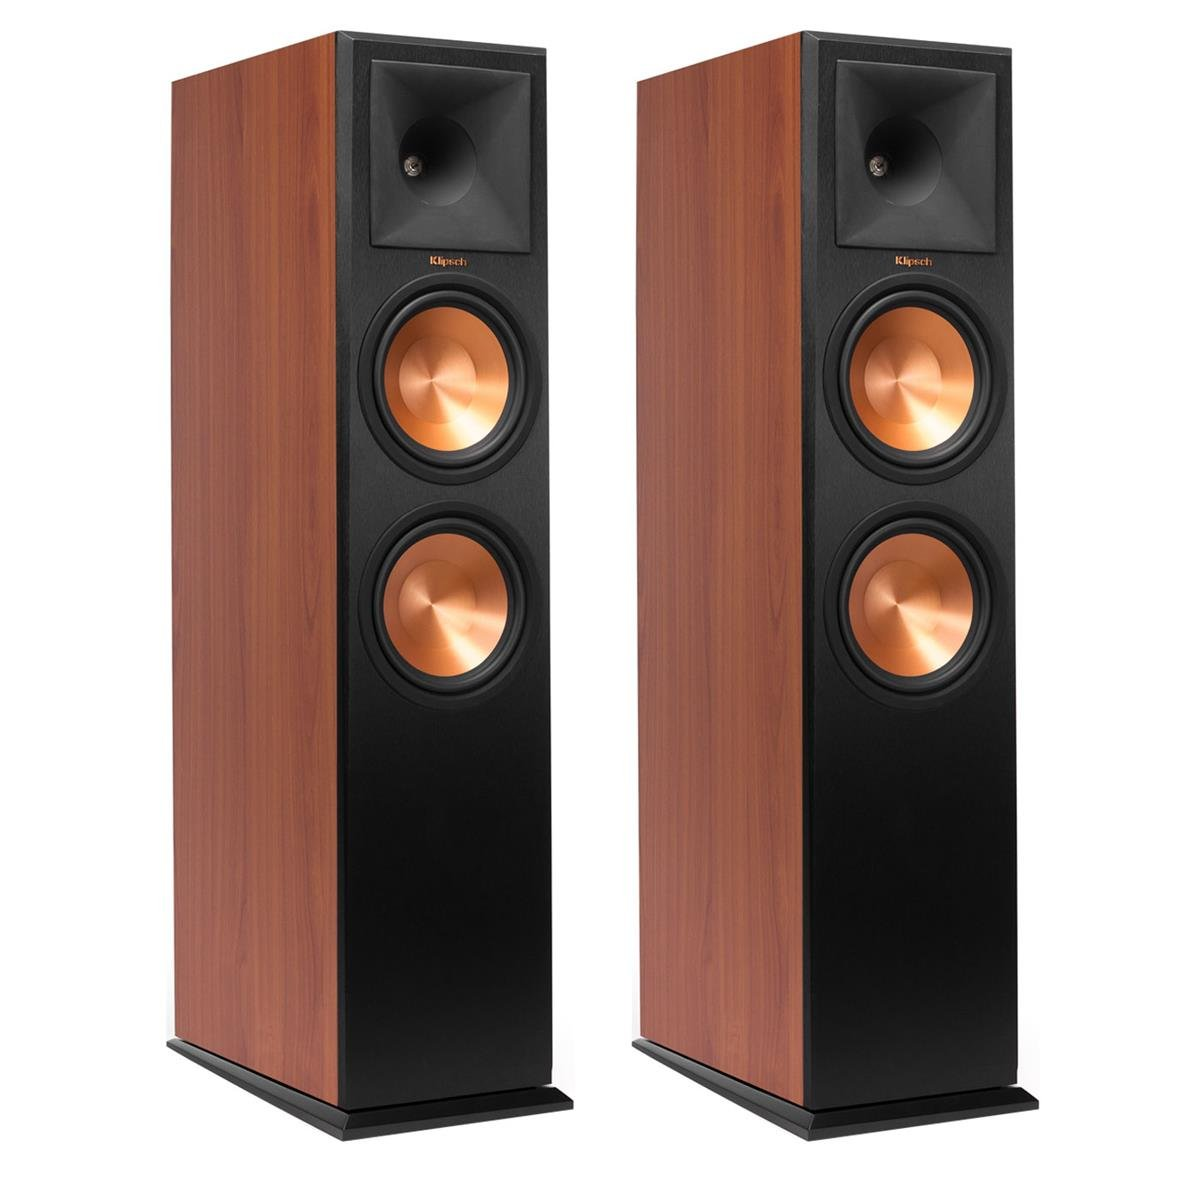 Klipsch RP-280F Reference Premiere Floorstanding Speaker with Dual 8 inch Cerametallic Cone Woofers (Cherry Pair)